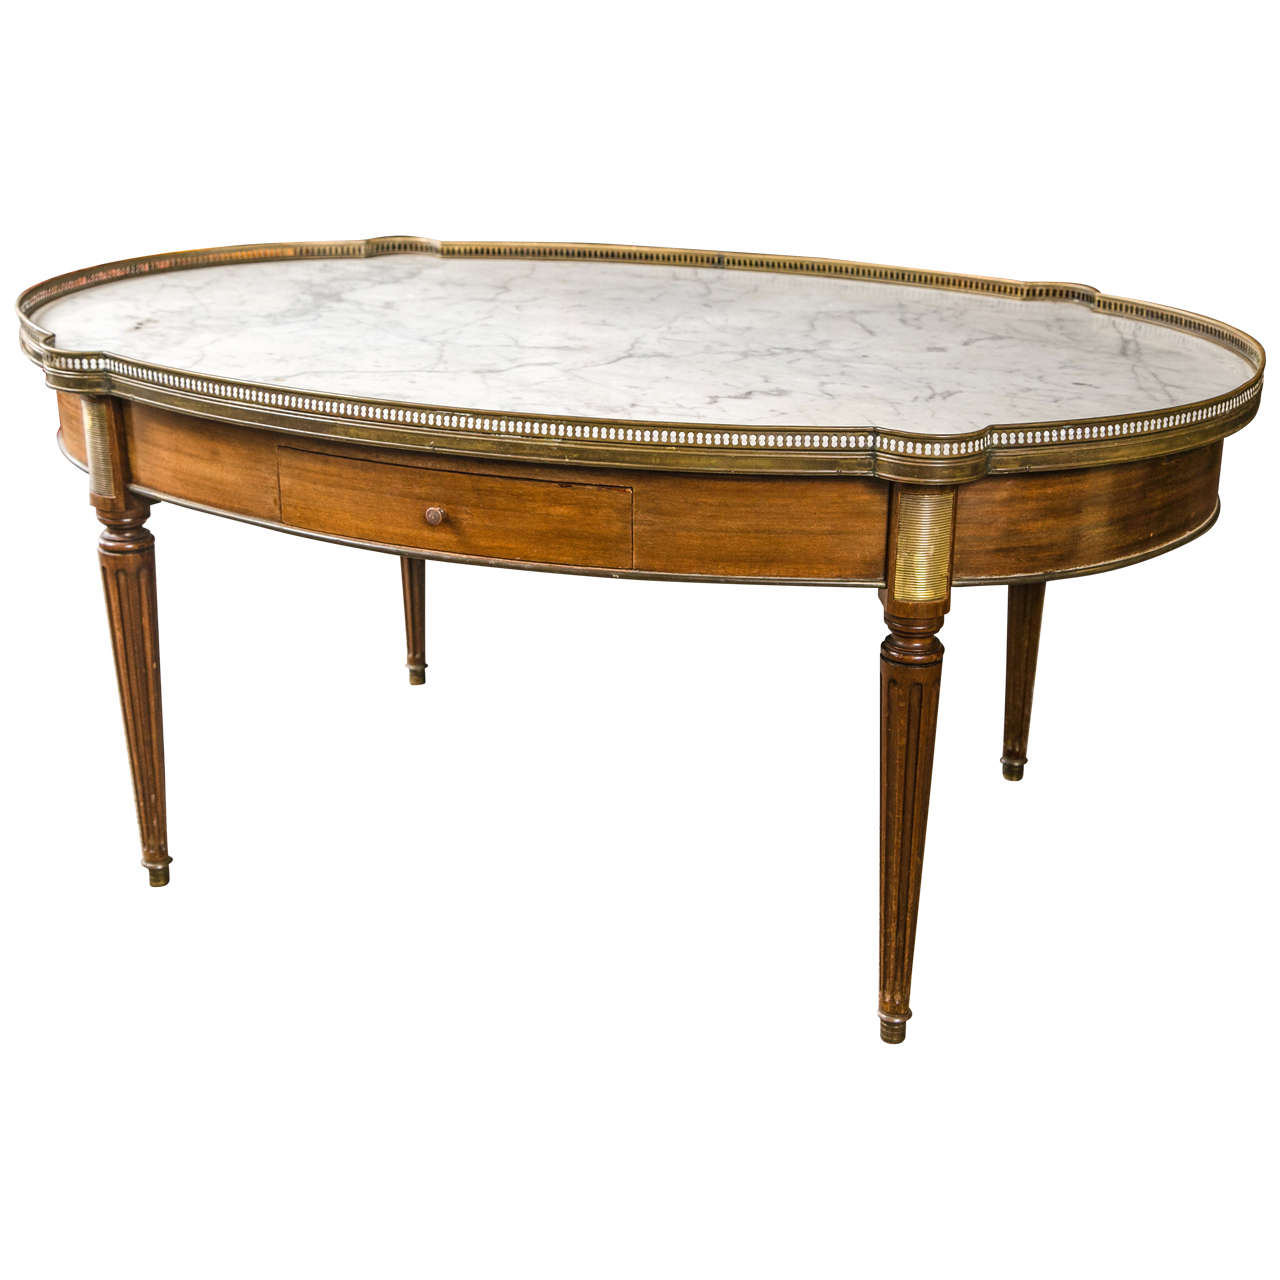 Louis XVI Style Marble-Top Low Table Or Coffee Table By